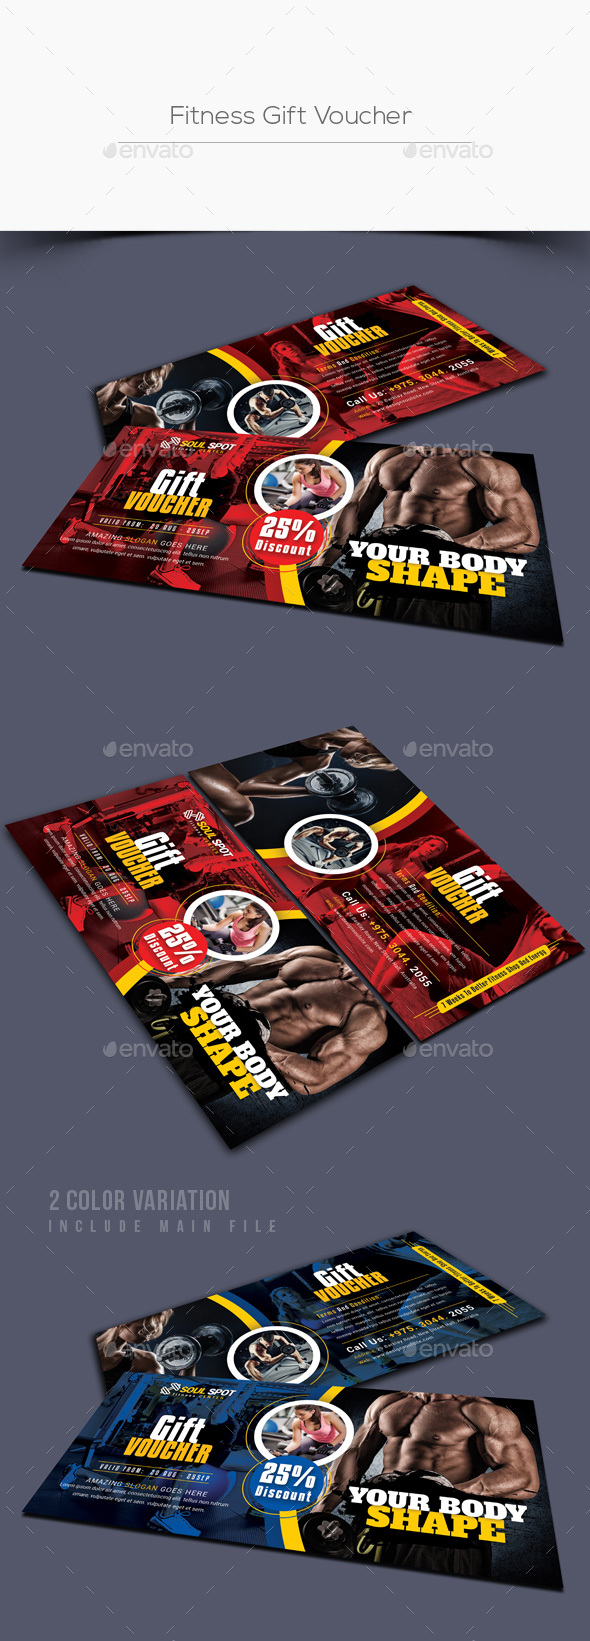 GraphicRiver Fitness Gift Voucher 21114398